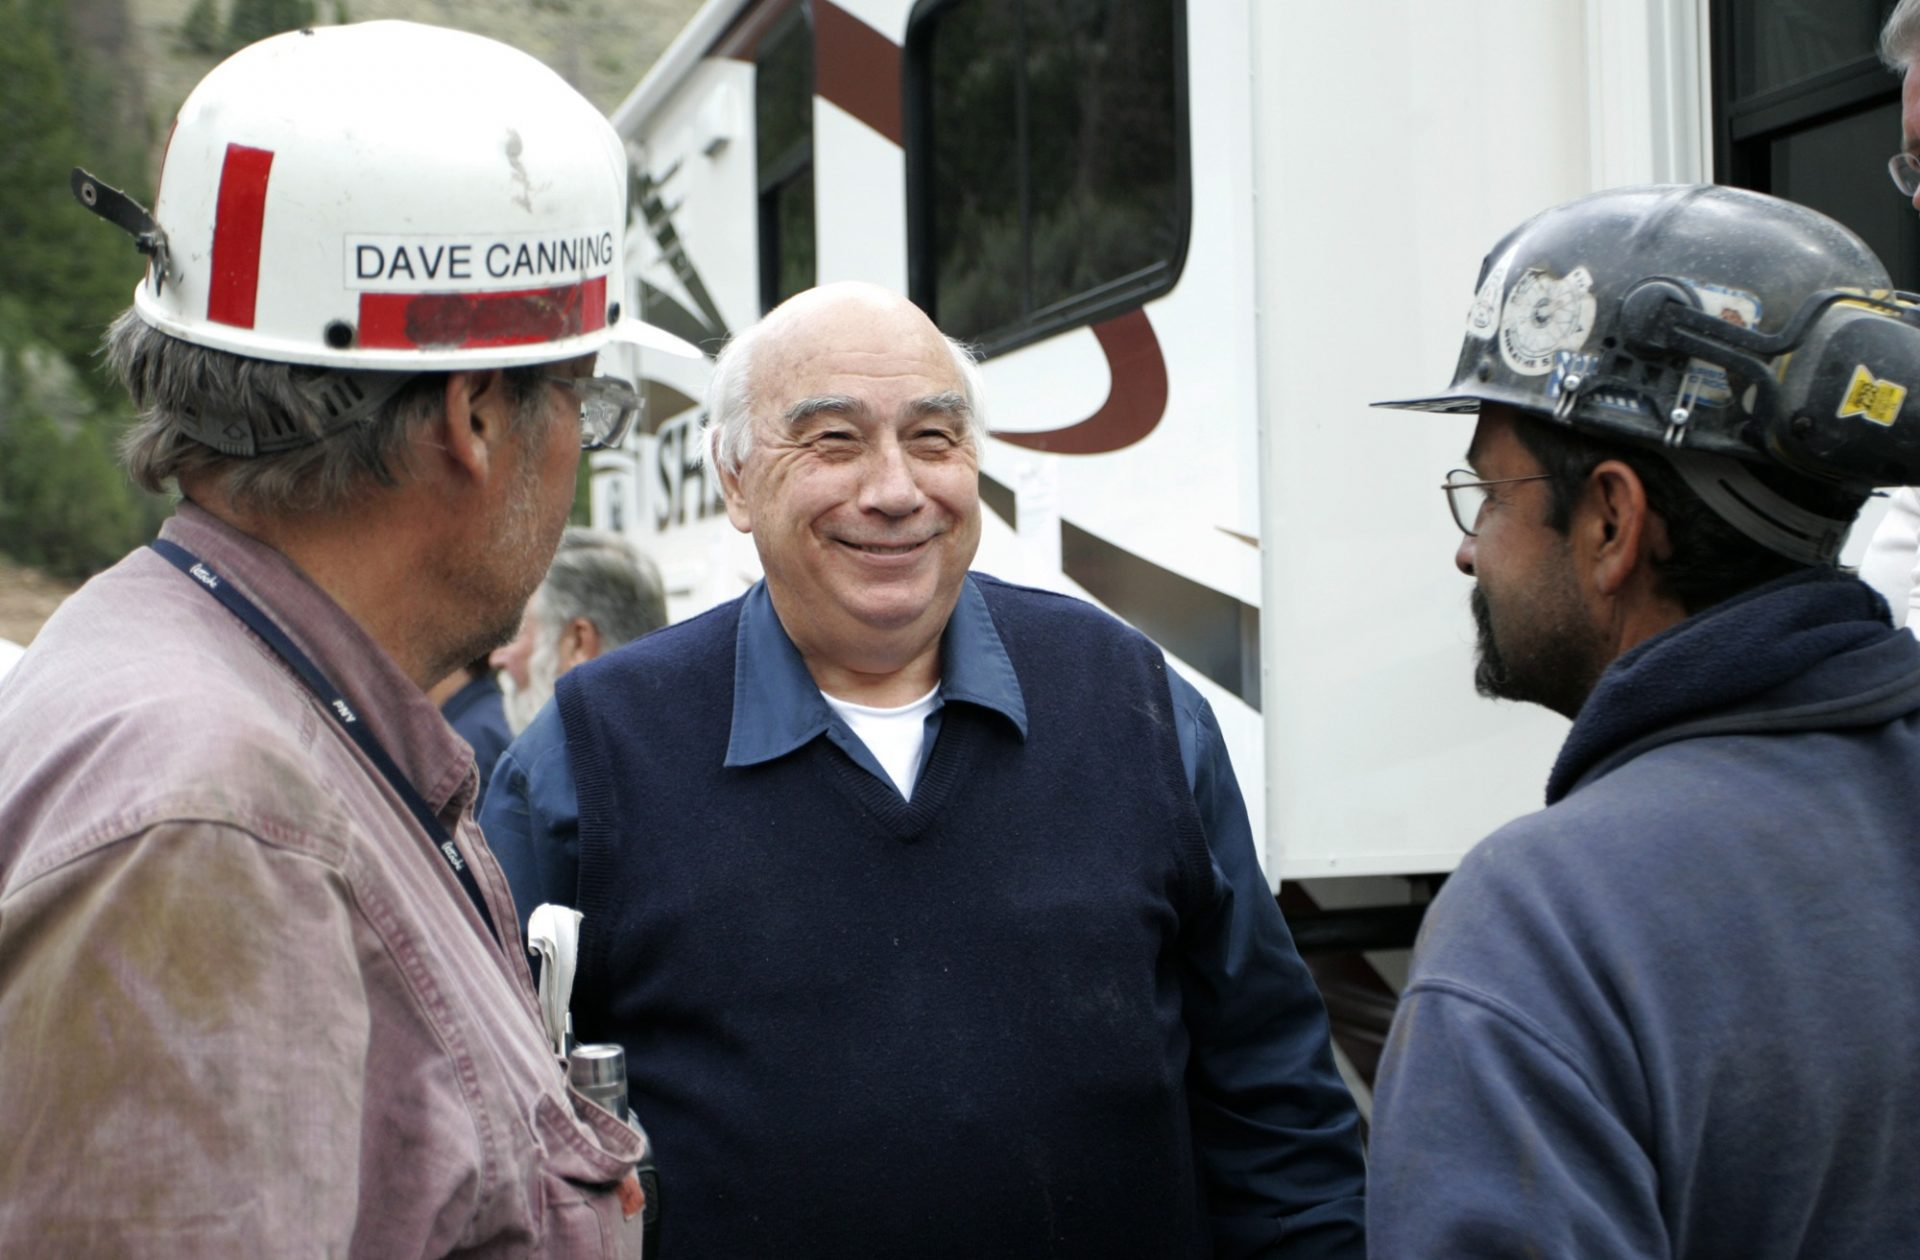 FILE PHOTO: In an Aug, 26, 2007 file photo, Robert Murray, center, chief executive of Murray Energy Corp., smiles while talking to Dave Canning, left, and Mike Glassom, right, two miners in charge of drilling bore holes into the Crandall Canyon M before a news conference northwest of Huntington, Utah.